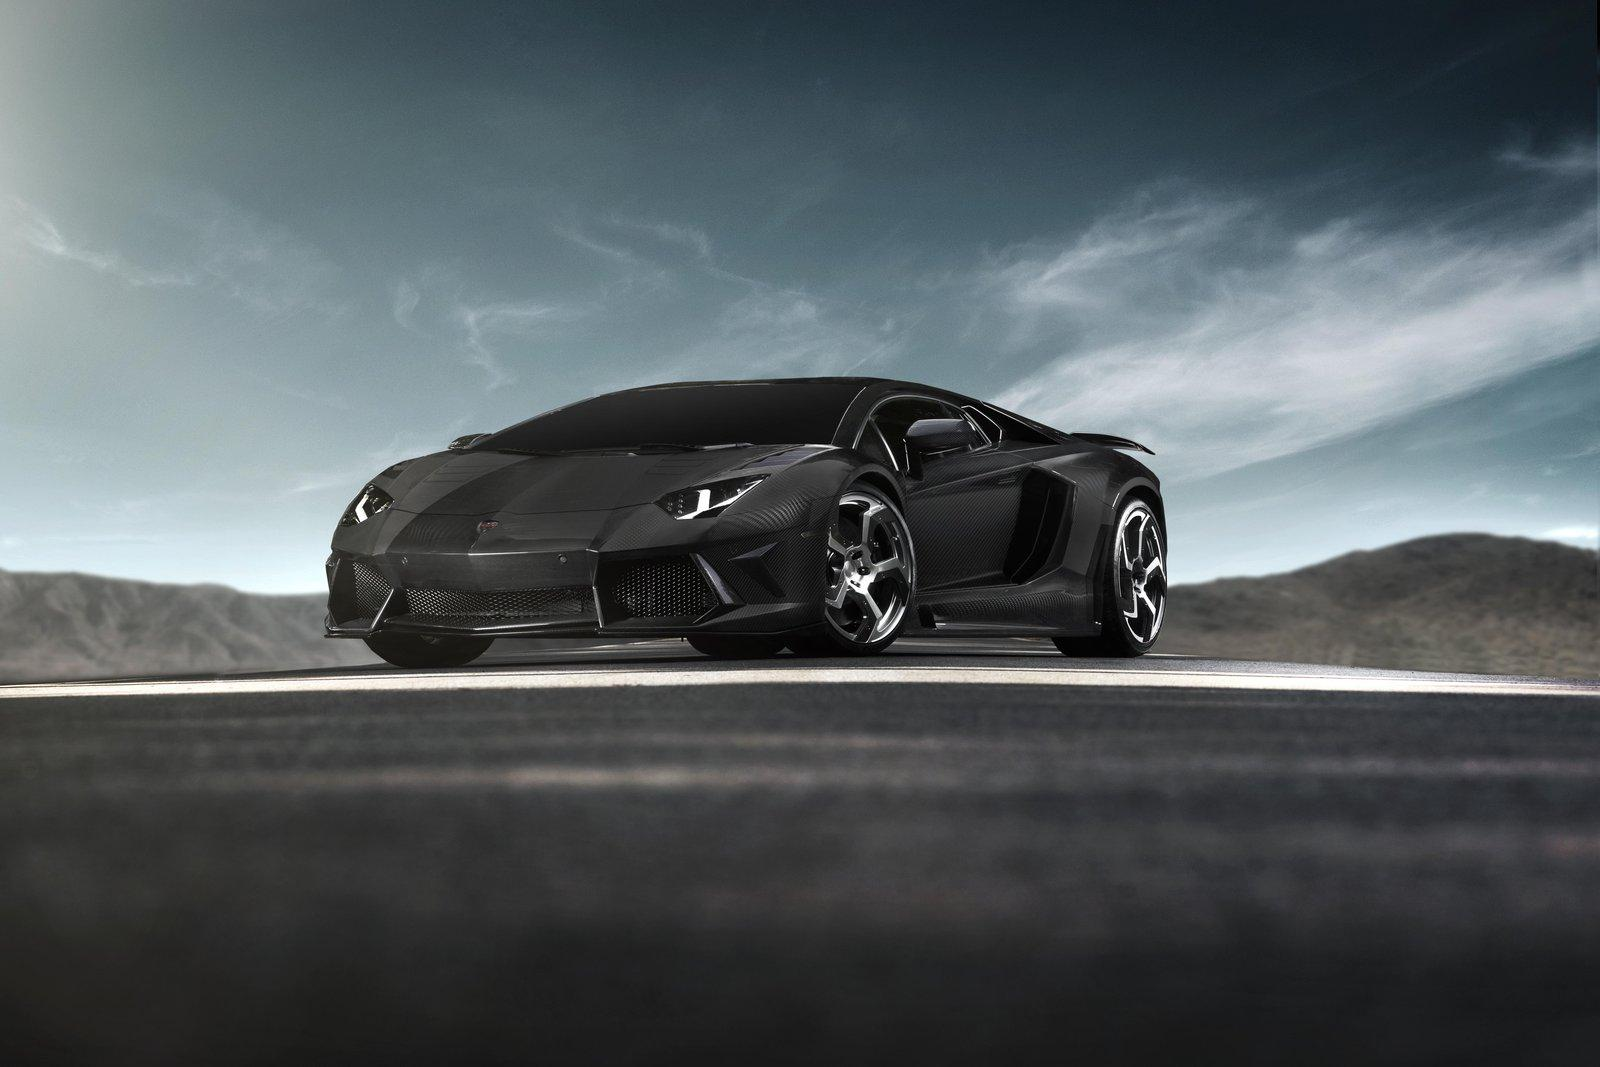 Mansory Carbonado Black Diamond Based On Lamborghini Aventador LP700-4